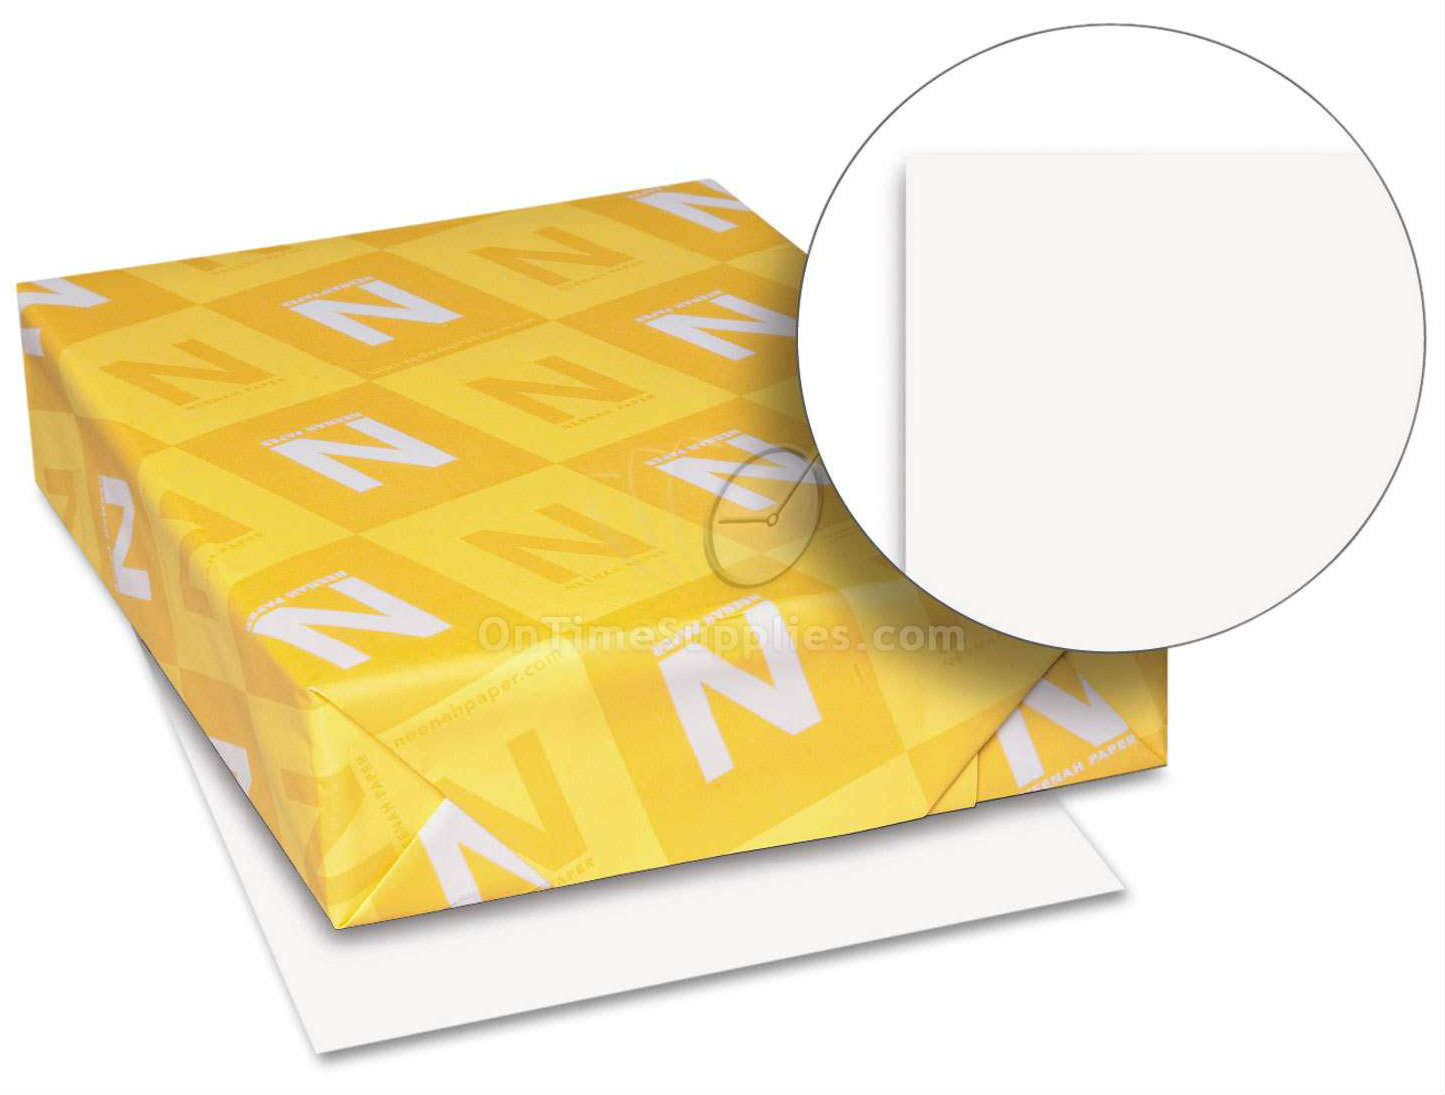 WAU40411 White Card Stock Paper by Neenah Paper